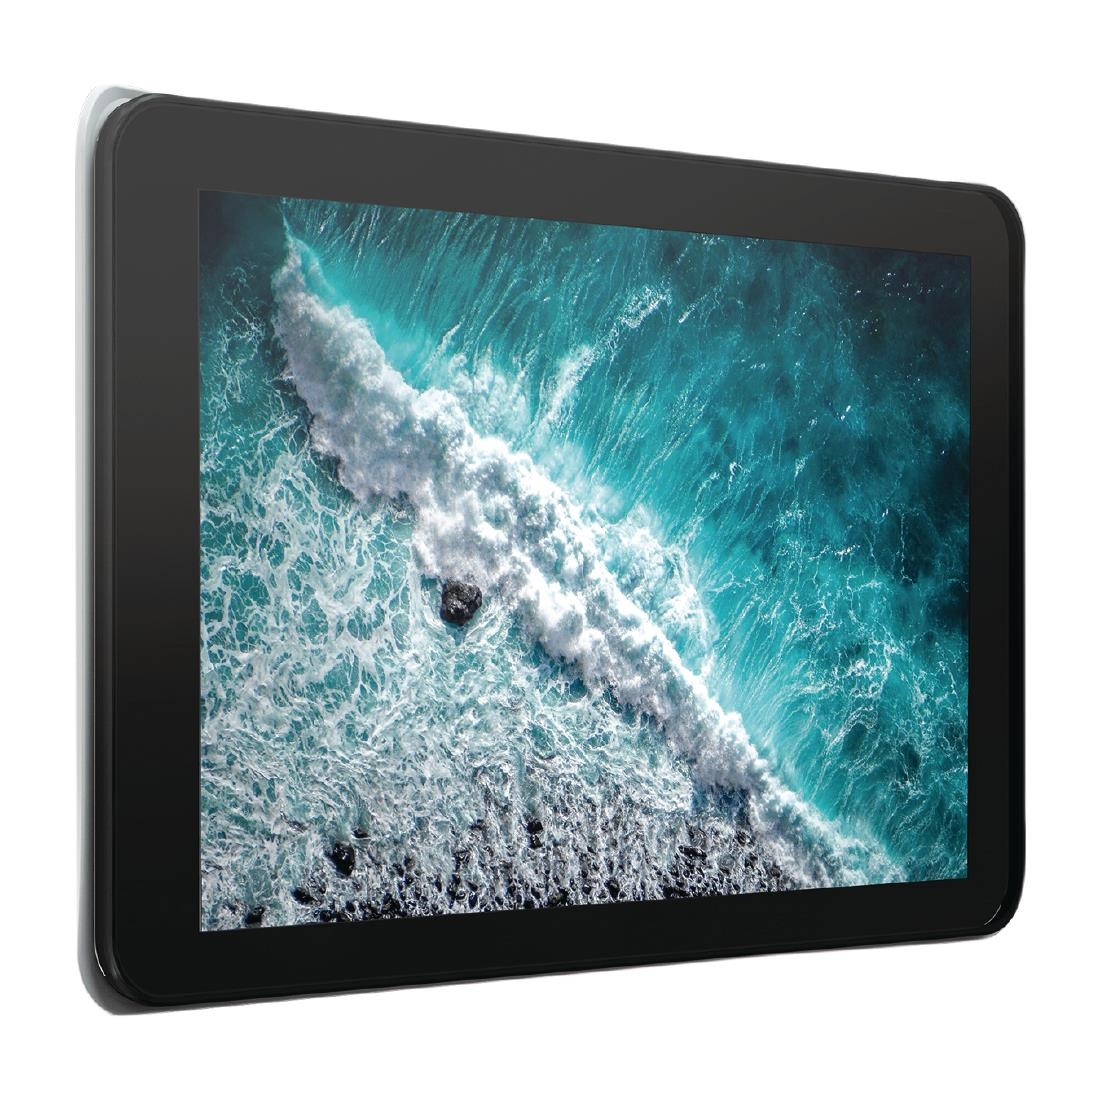 Image of 10 Smart all-in-one LCD display with lightbar, PoE & touchscreen